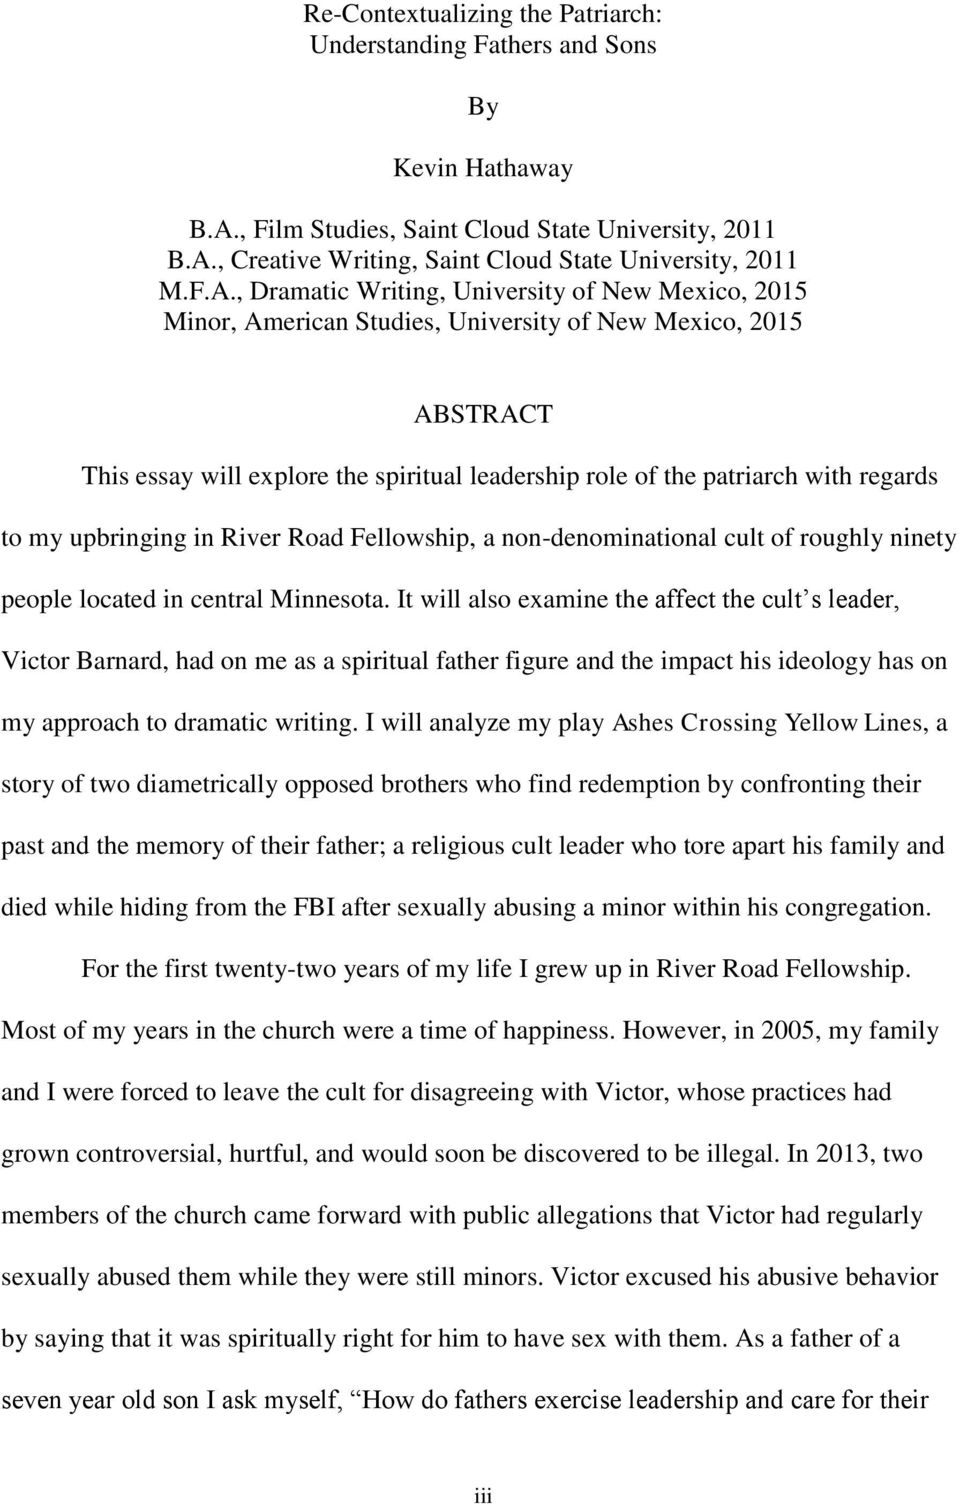 Ways conclude essay without saying conclusion